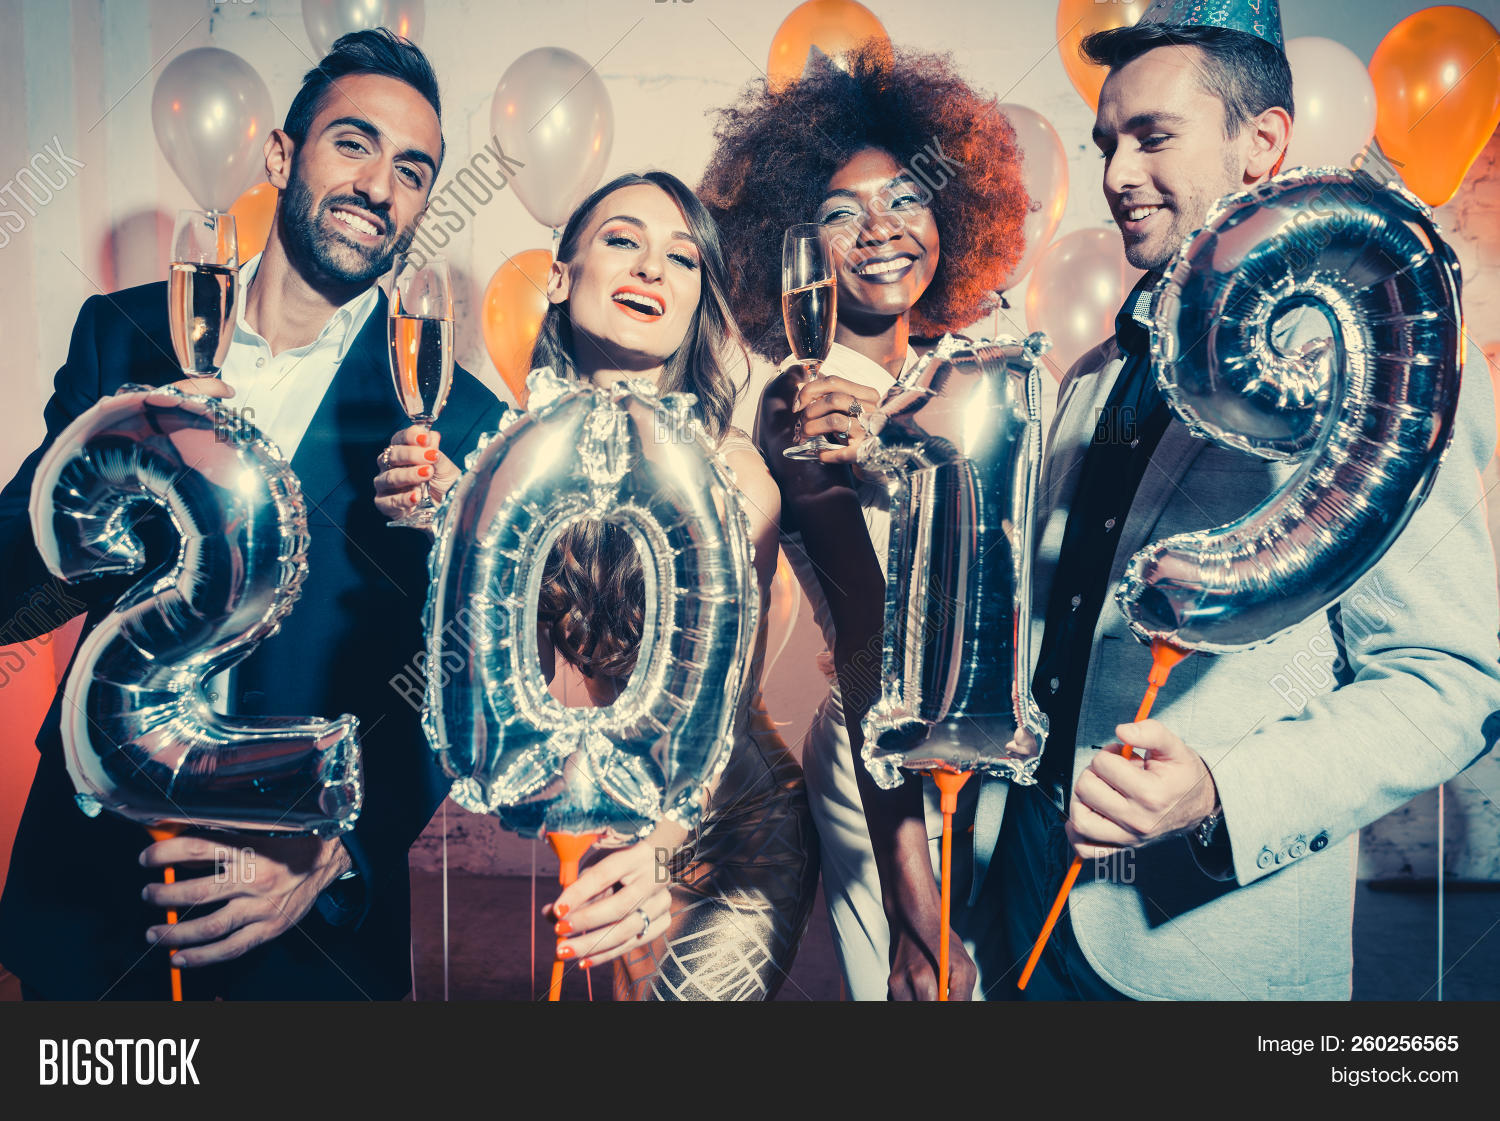 2019,african,alcohol,black,bottle,celebration,champagne,cheerful,clinking,club,clubbing,couple,couples,dancing,divers,diversity,dress,drinking,eve,friends,fun,girls,glasses,gold,group,holding,man,men,midnight,mixed,new,new year,new years card,new years eve,numbers,nye,party,people,silver,sparkling wine,suit,white,woman,women,year,years